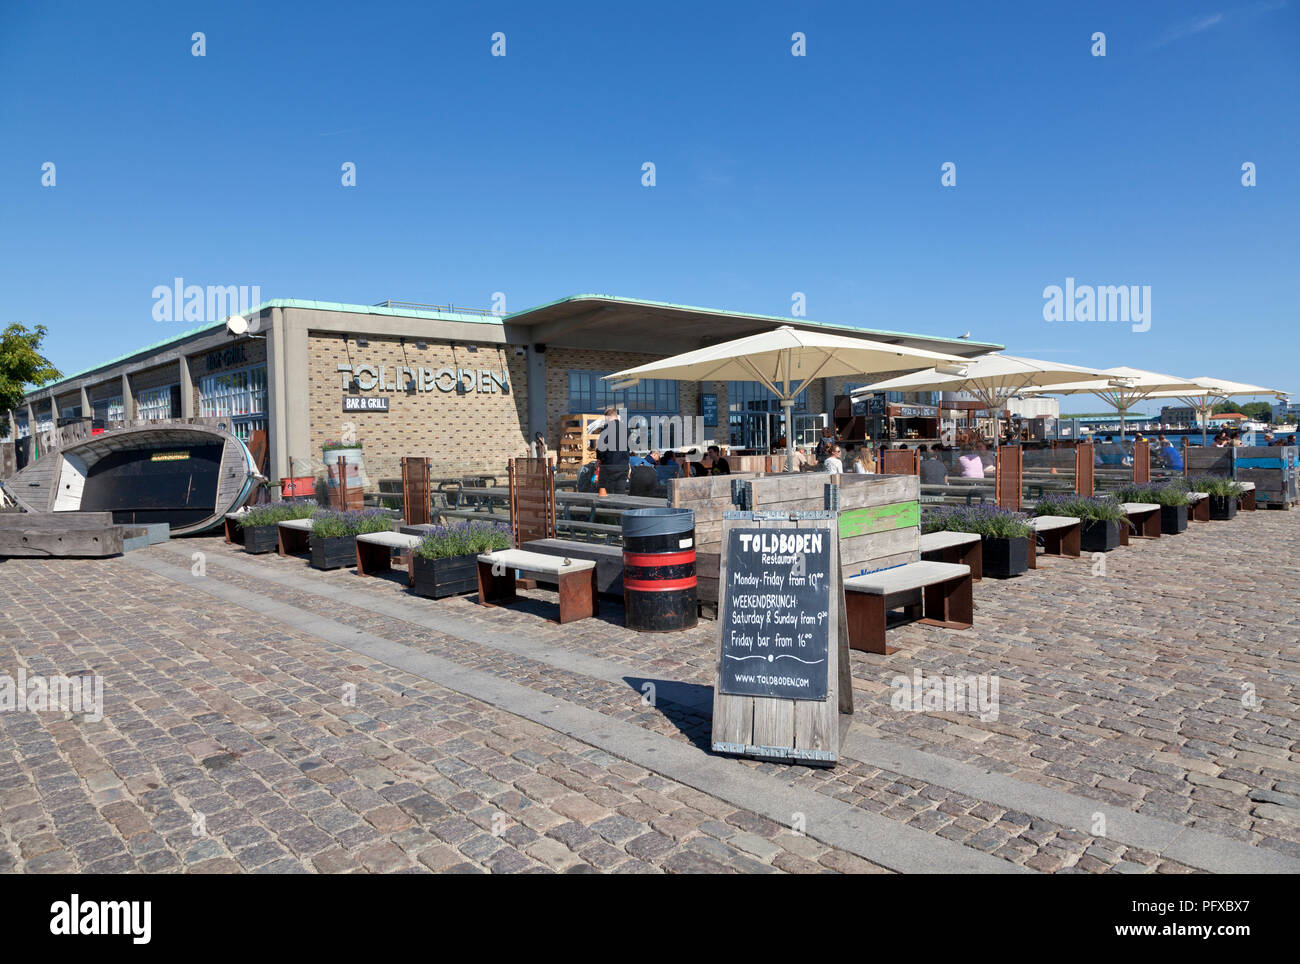 The restaurant, bar and café TOLDBODEN at Toldboden (the old custom house) next to Langelinie quay in the port of Copenhagen. Stock Photo